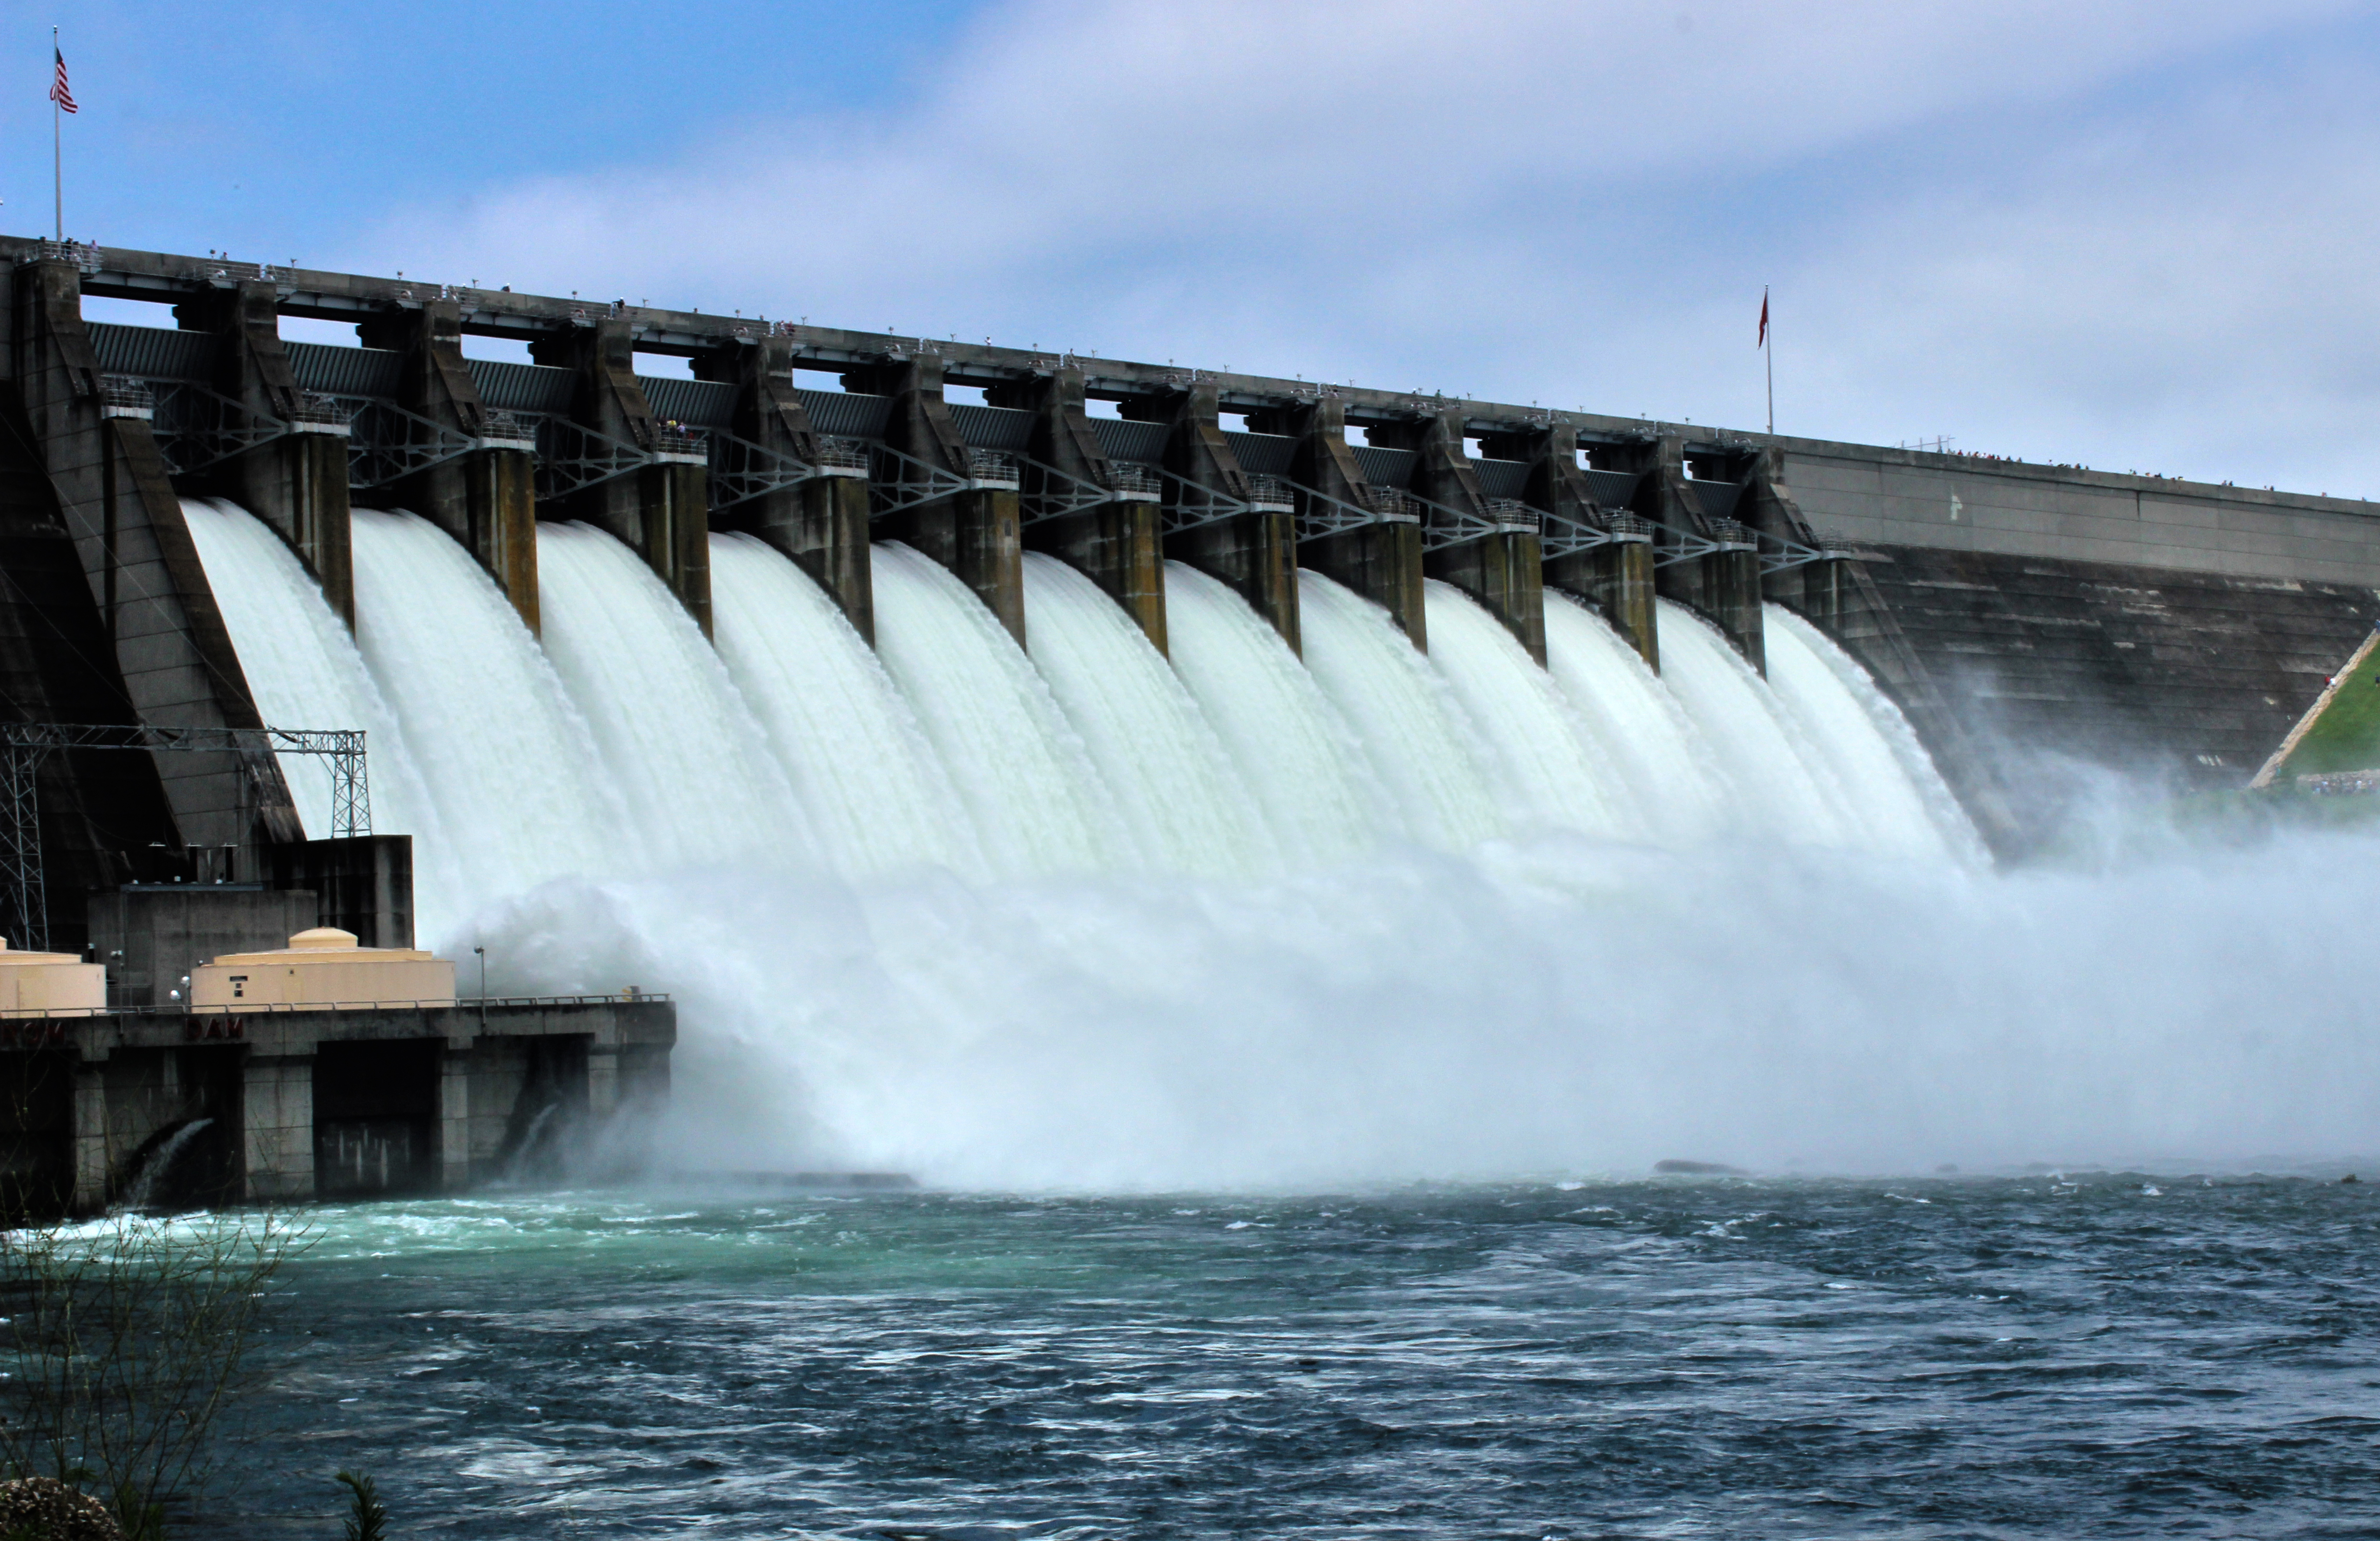 Myanmar A Case Study For Improving Hydropower Through System Scale Planning